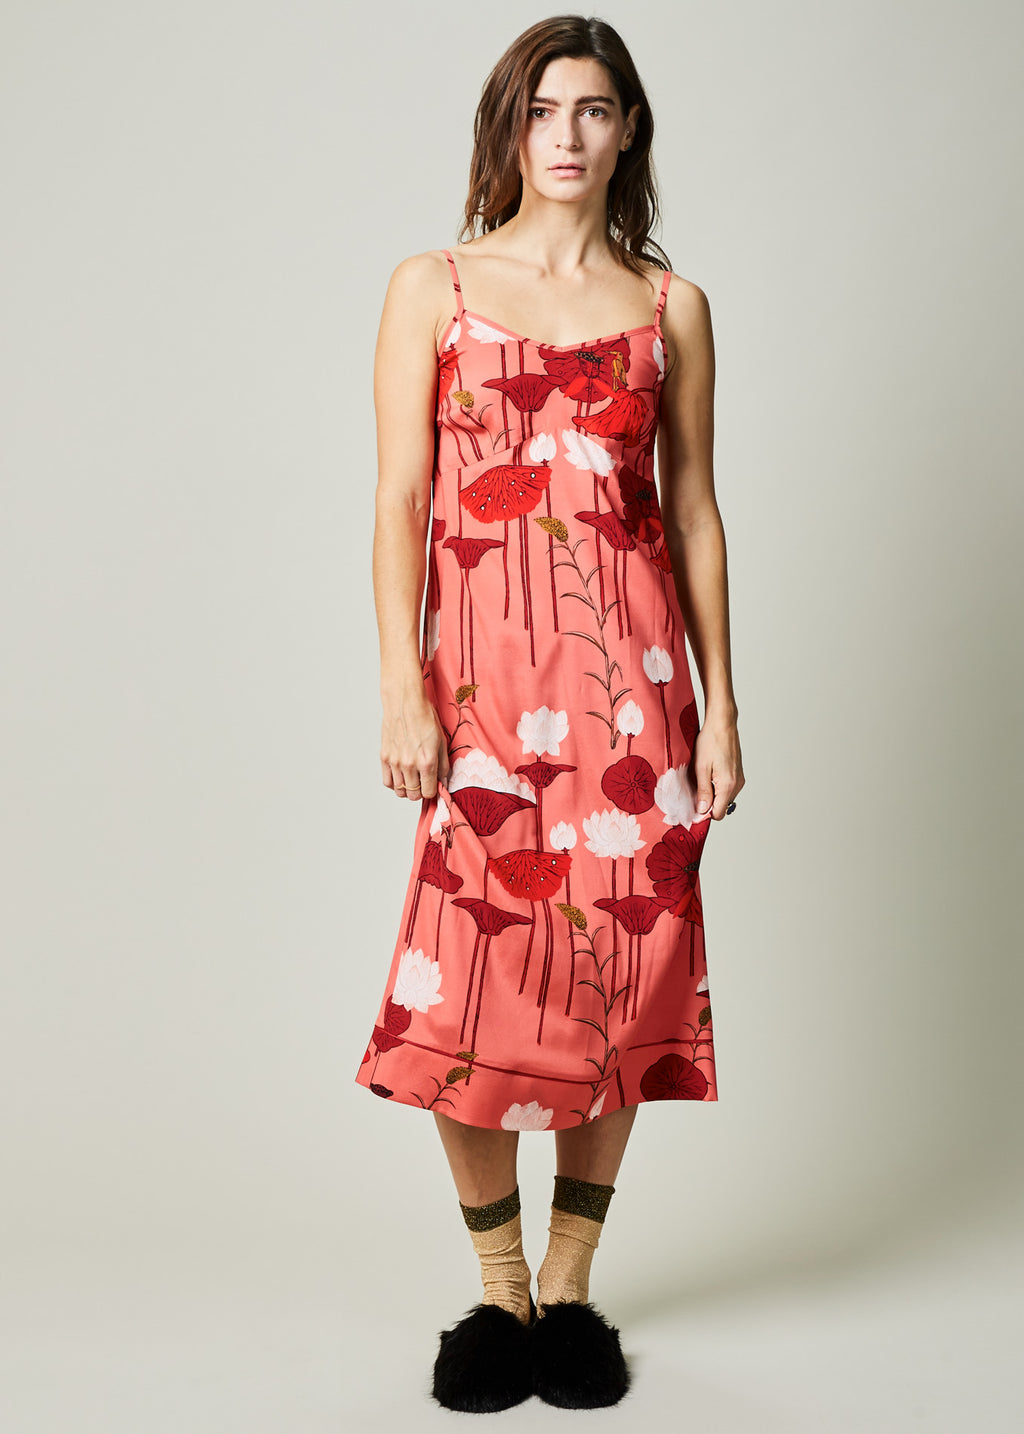 Lotus Flower Slipdress